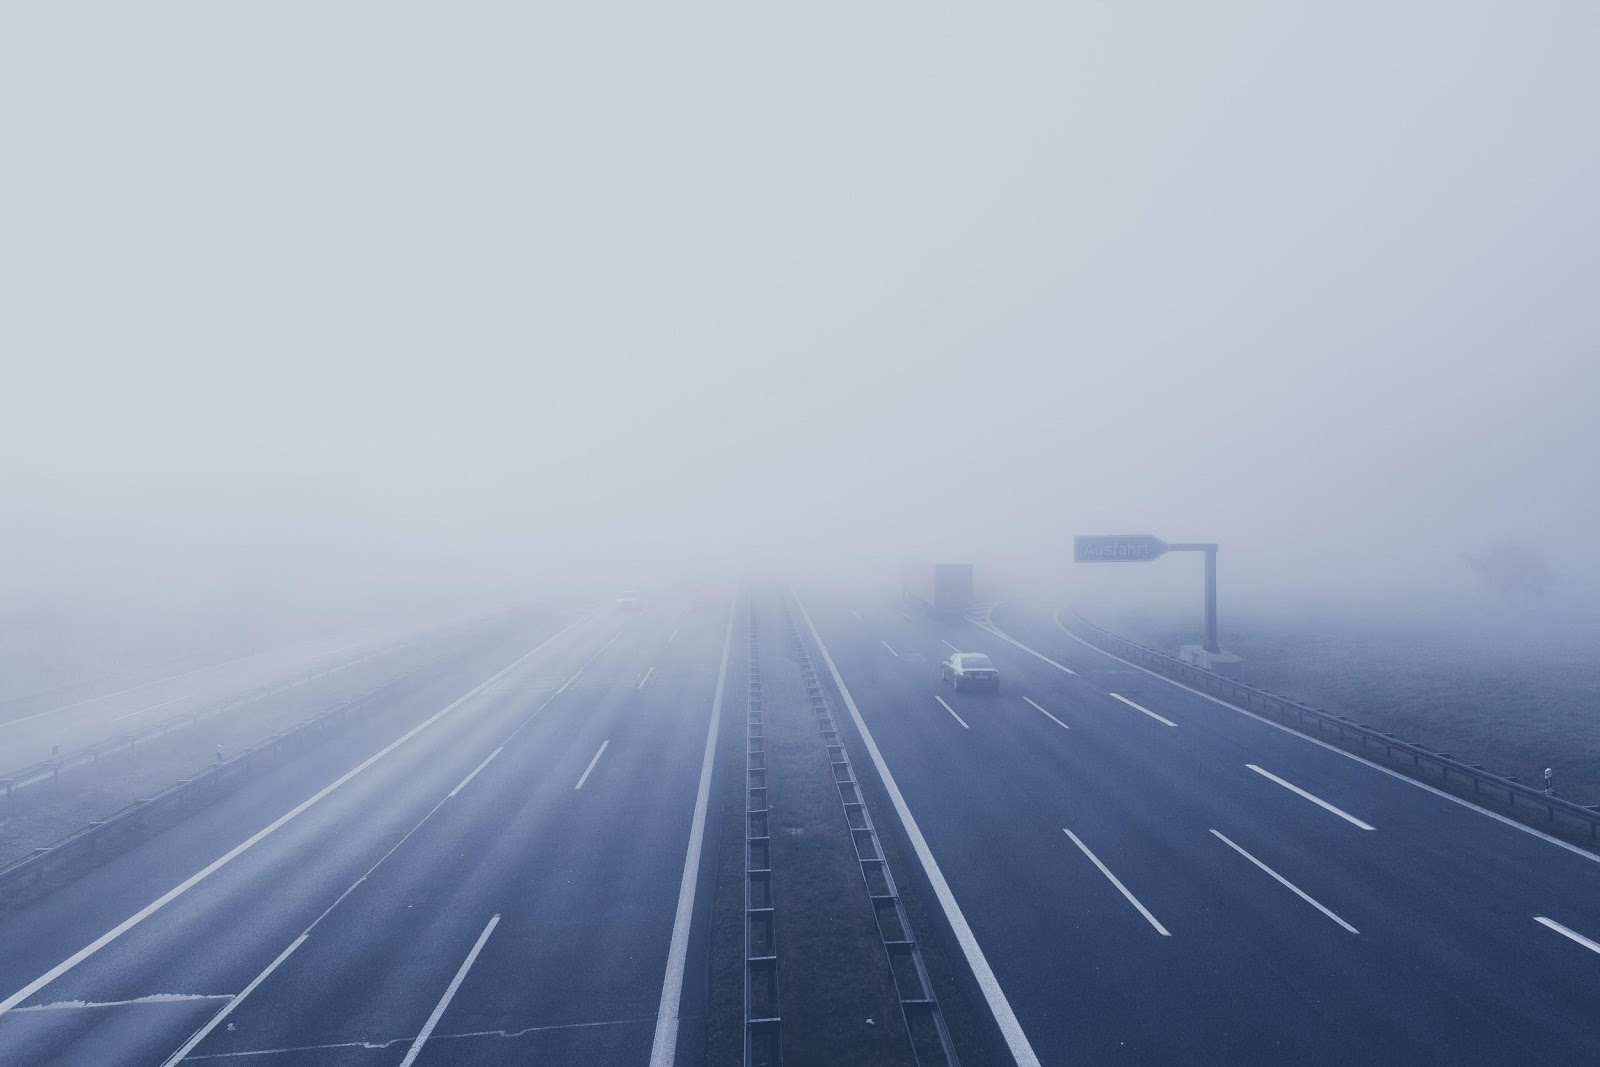 driving in the fog can be tricky, here is how you implement fuel-efficient driving in the fog.